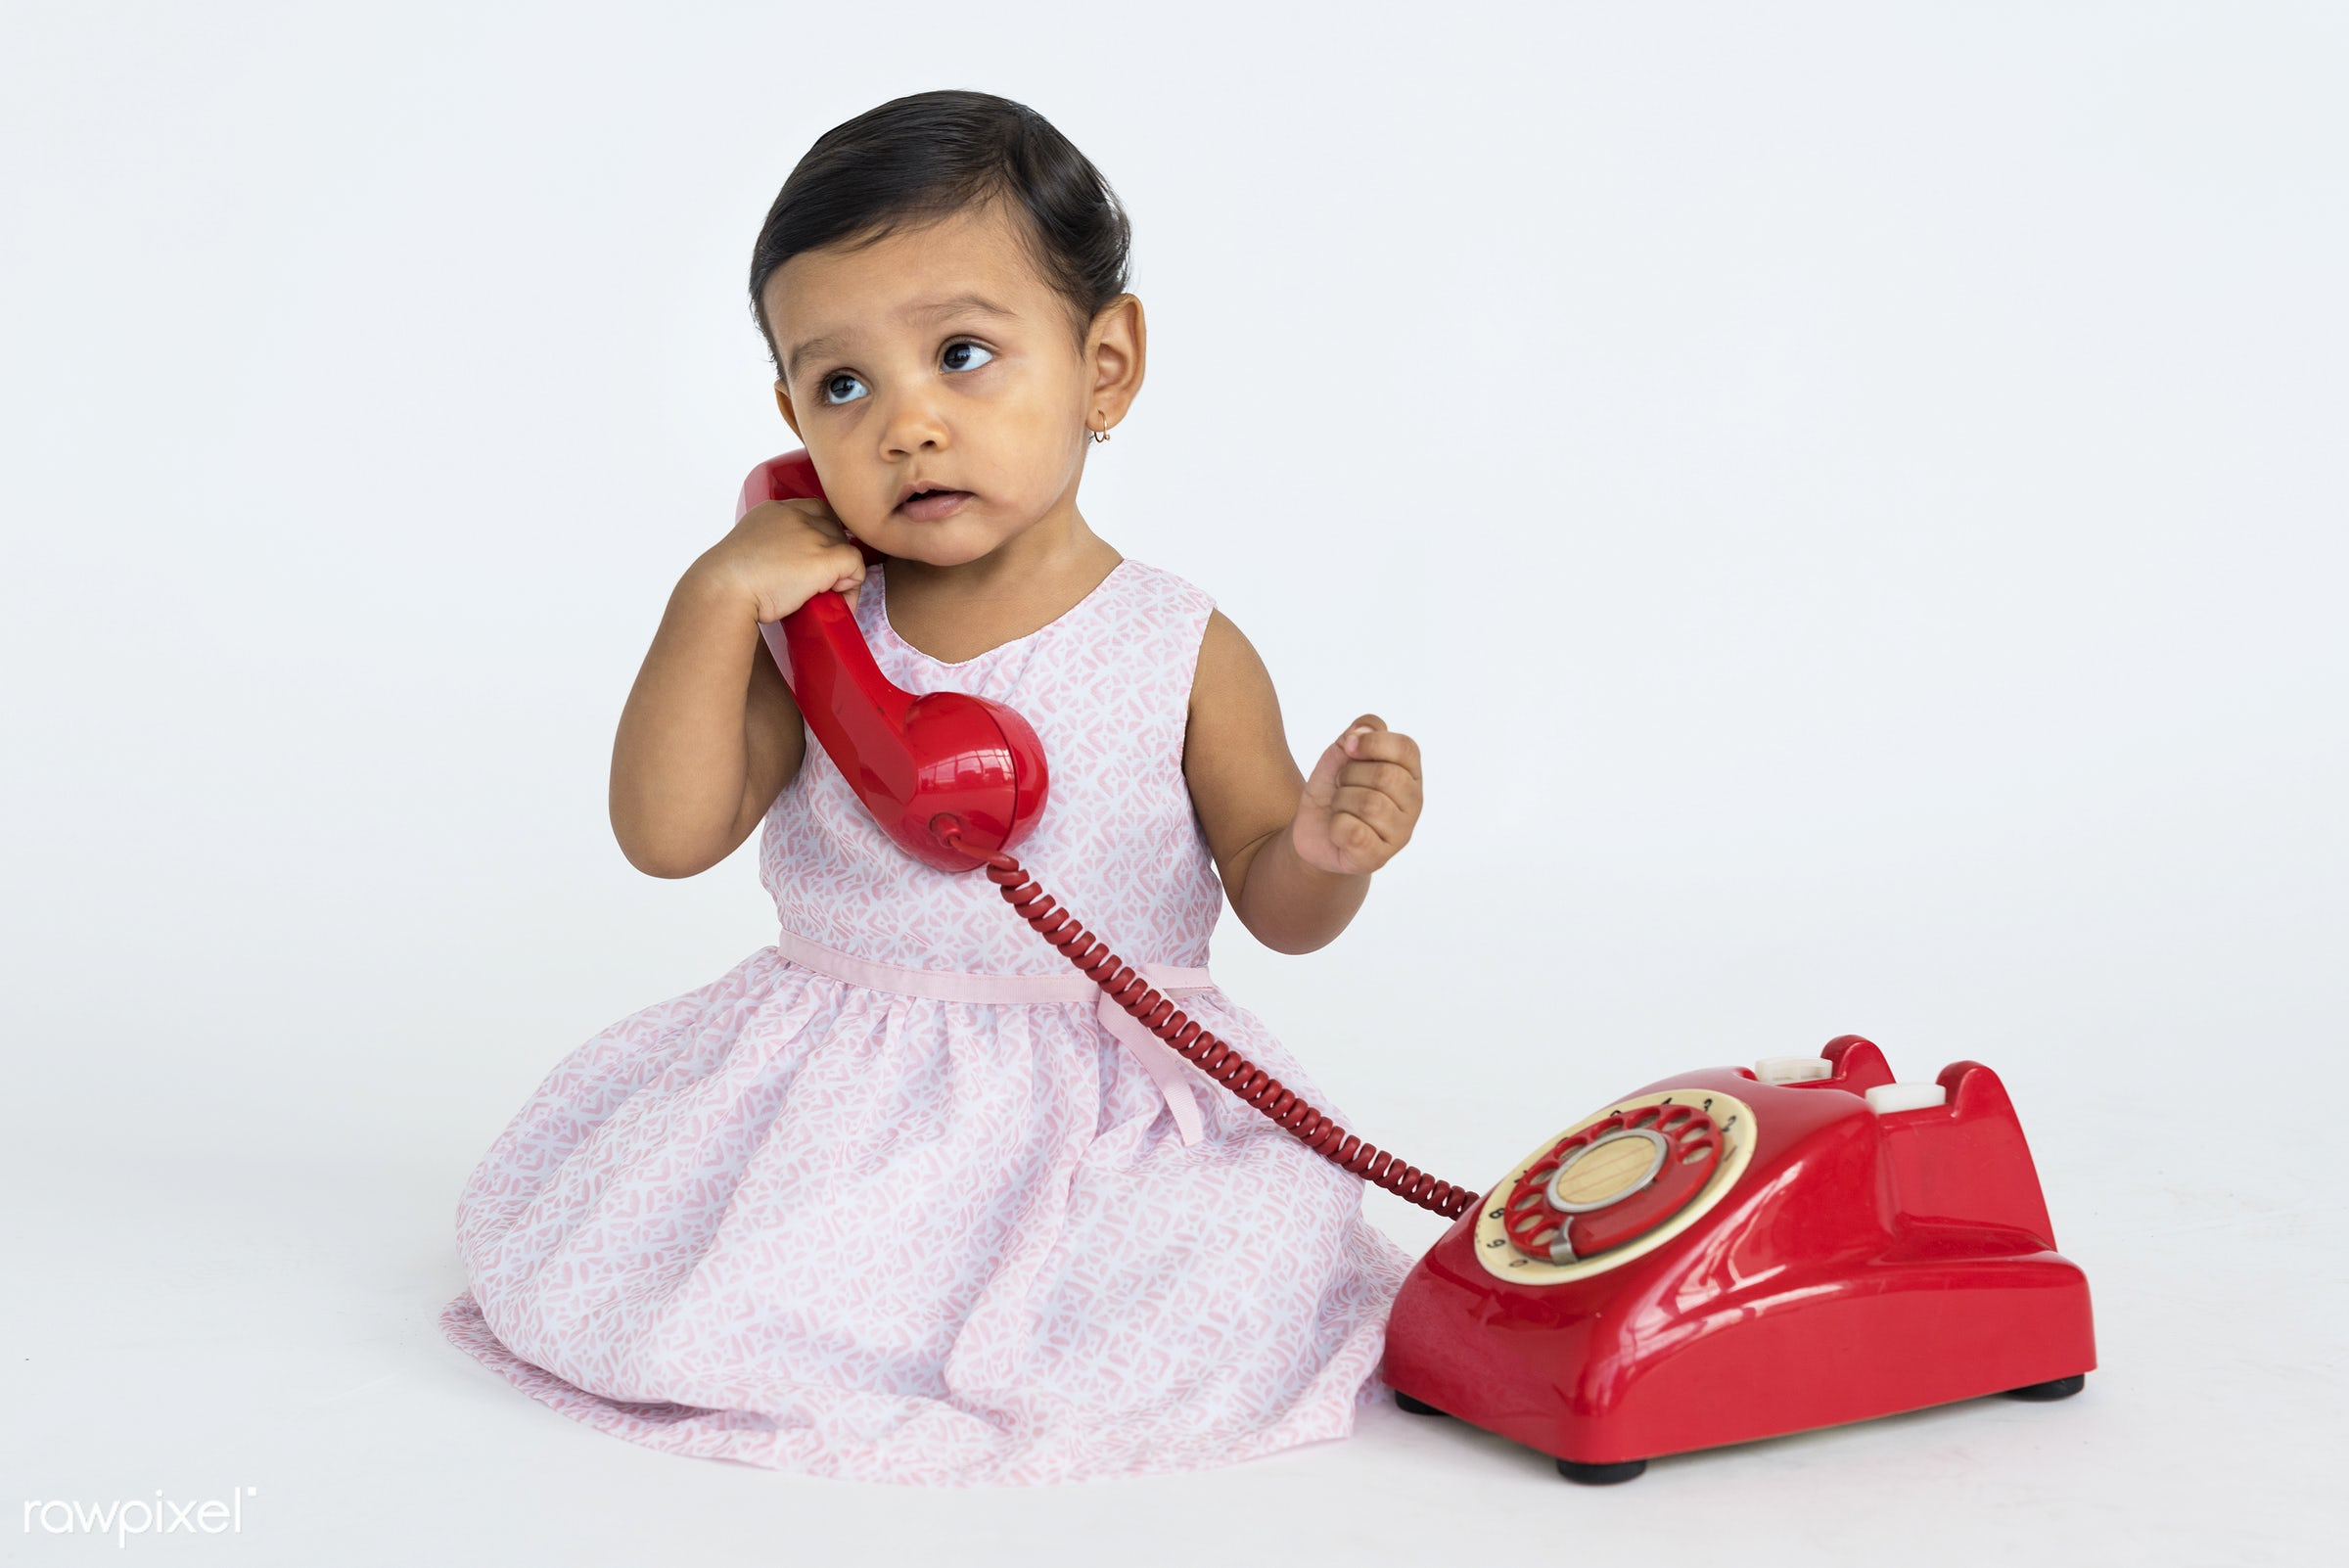 studio, expression, person, people, kid, telecommunication, childhood, smile, cheerful, smiling, isolated, little girl,...